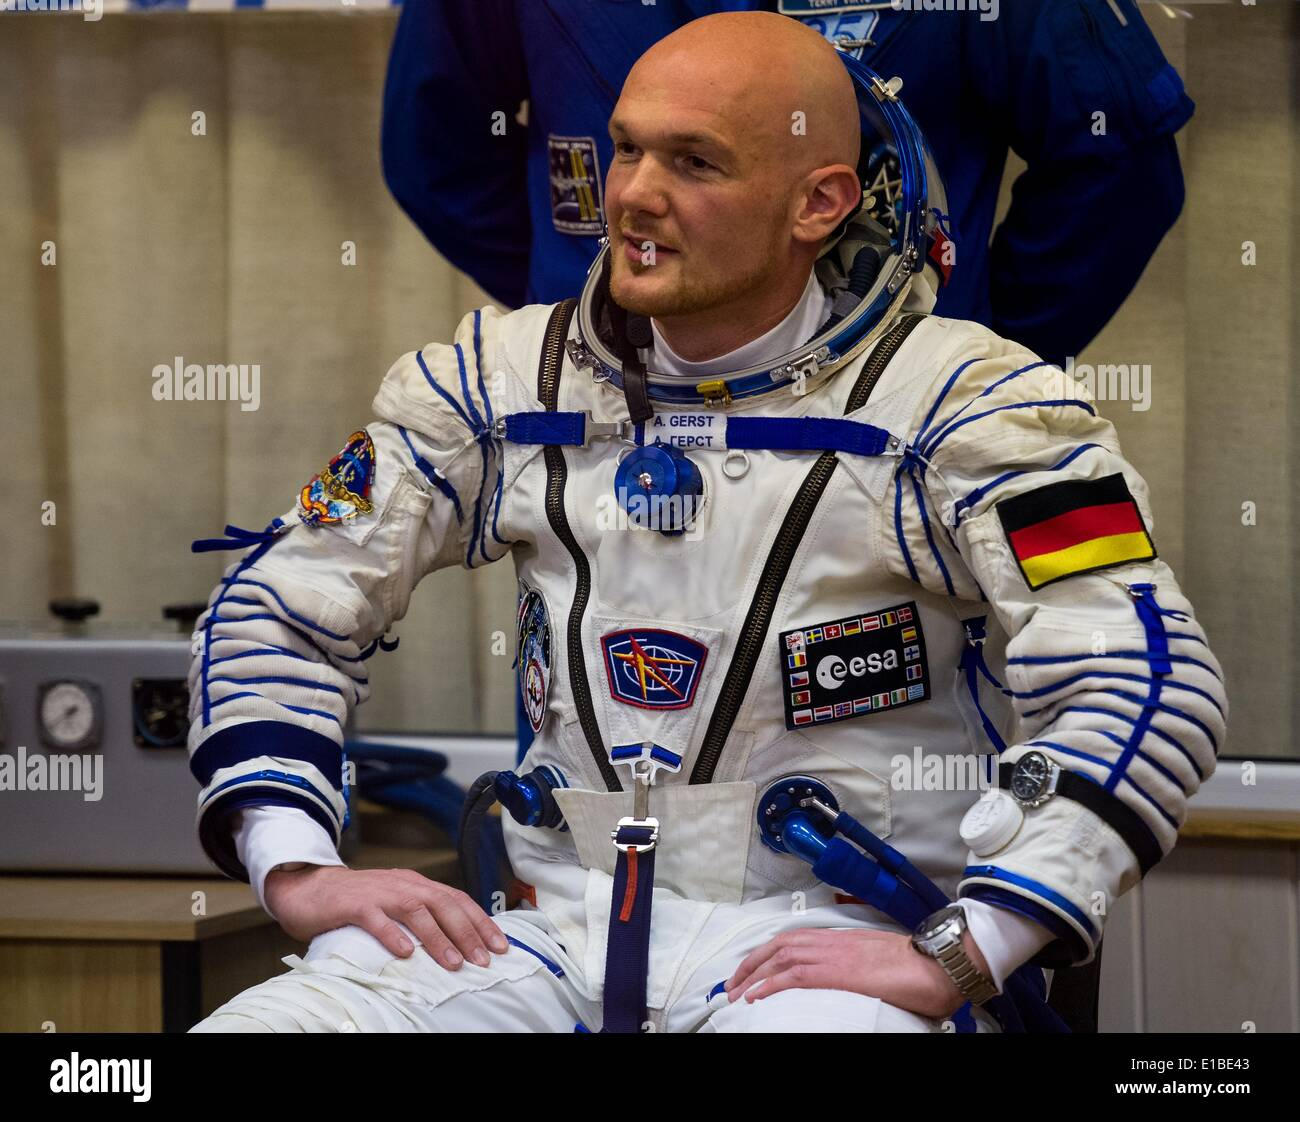 astronaut european space agency - photo #30